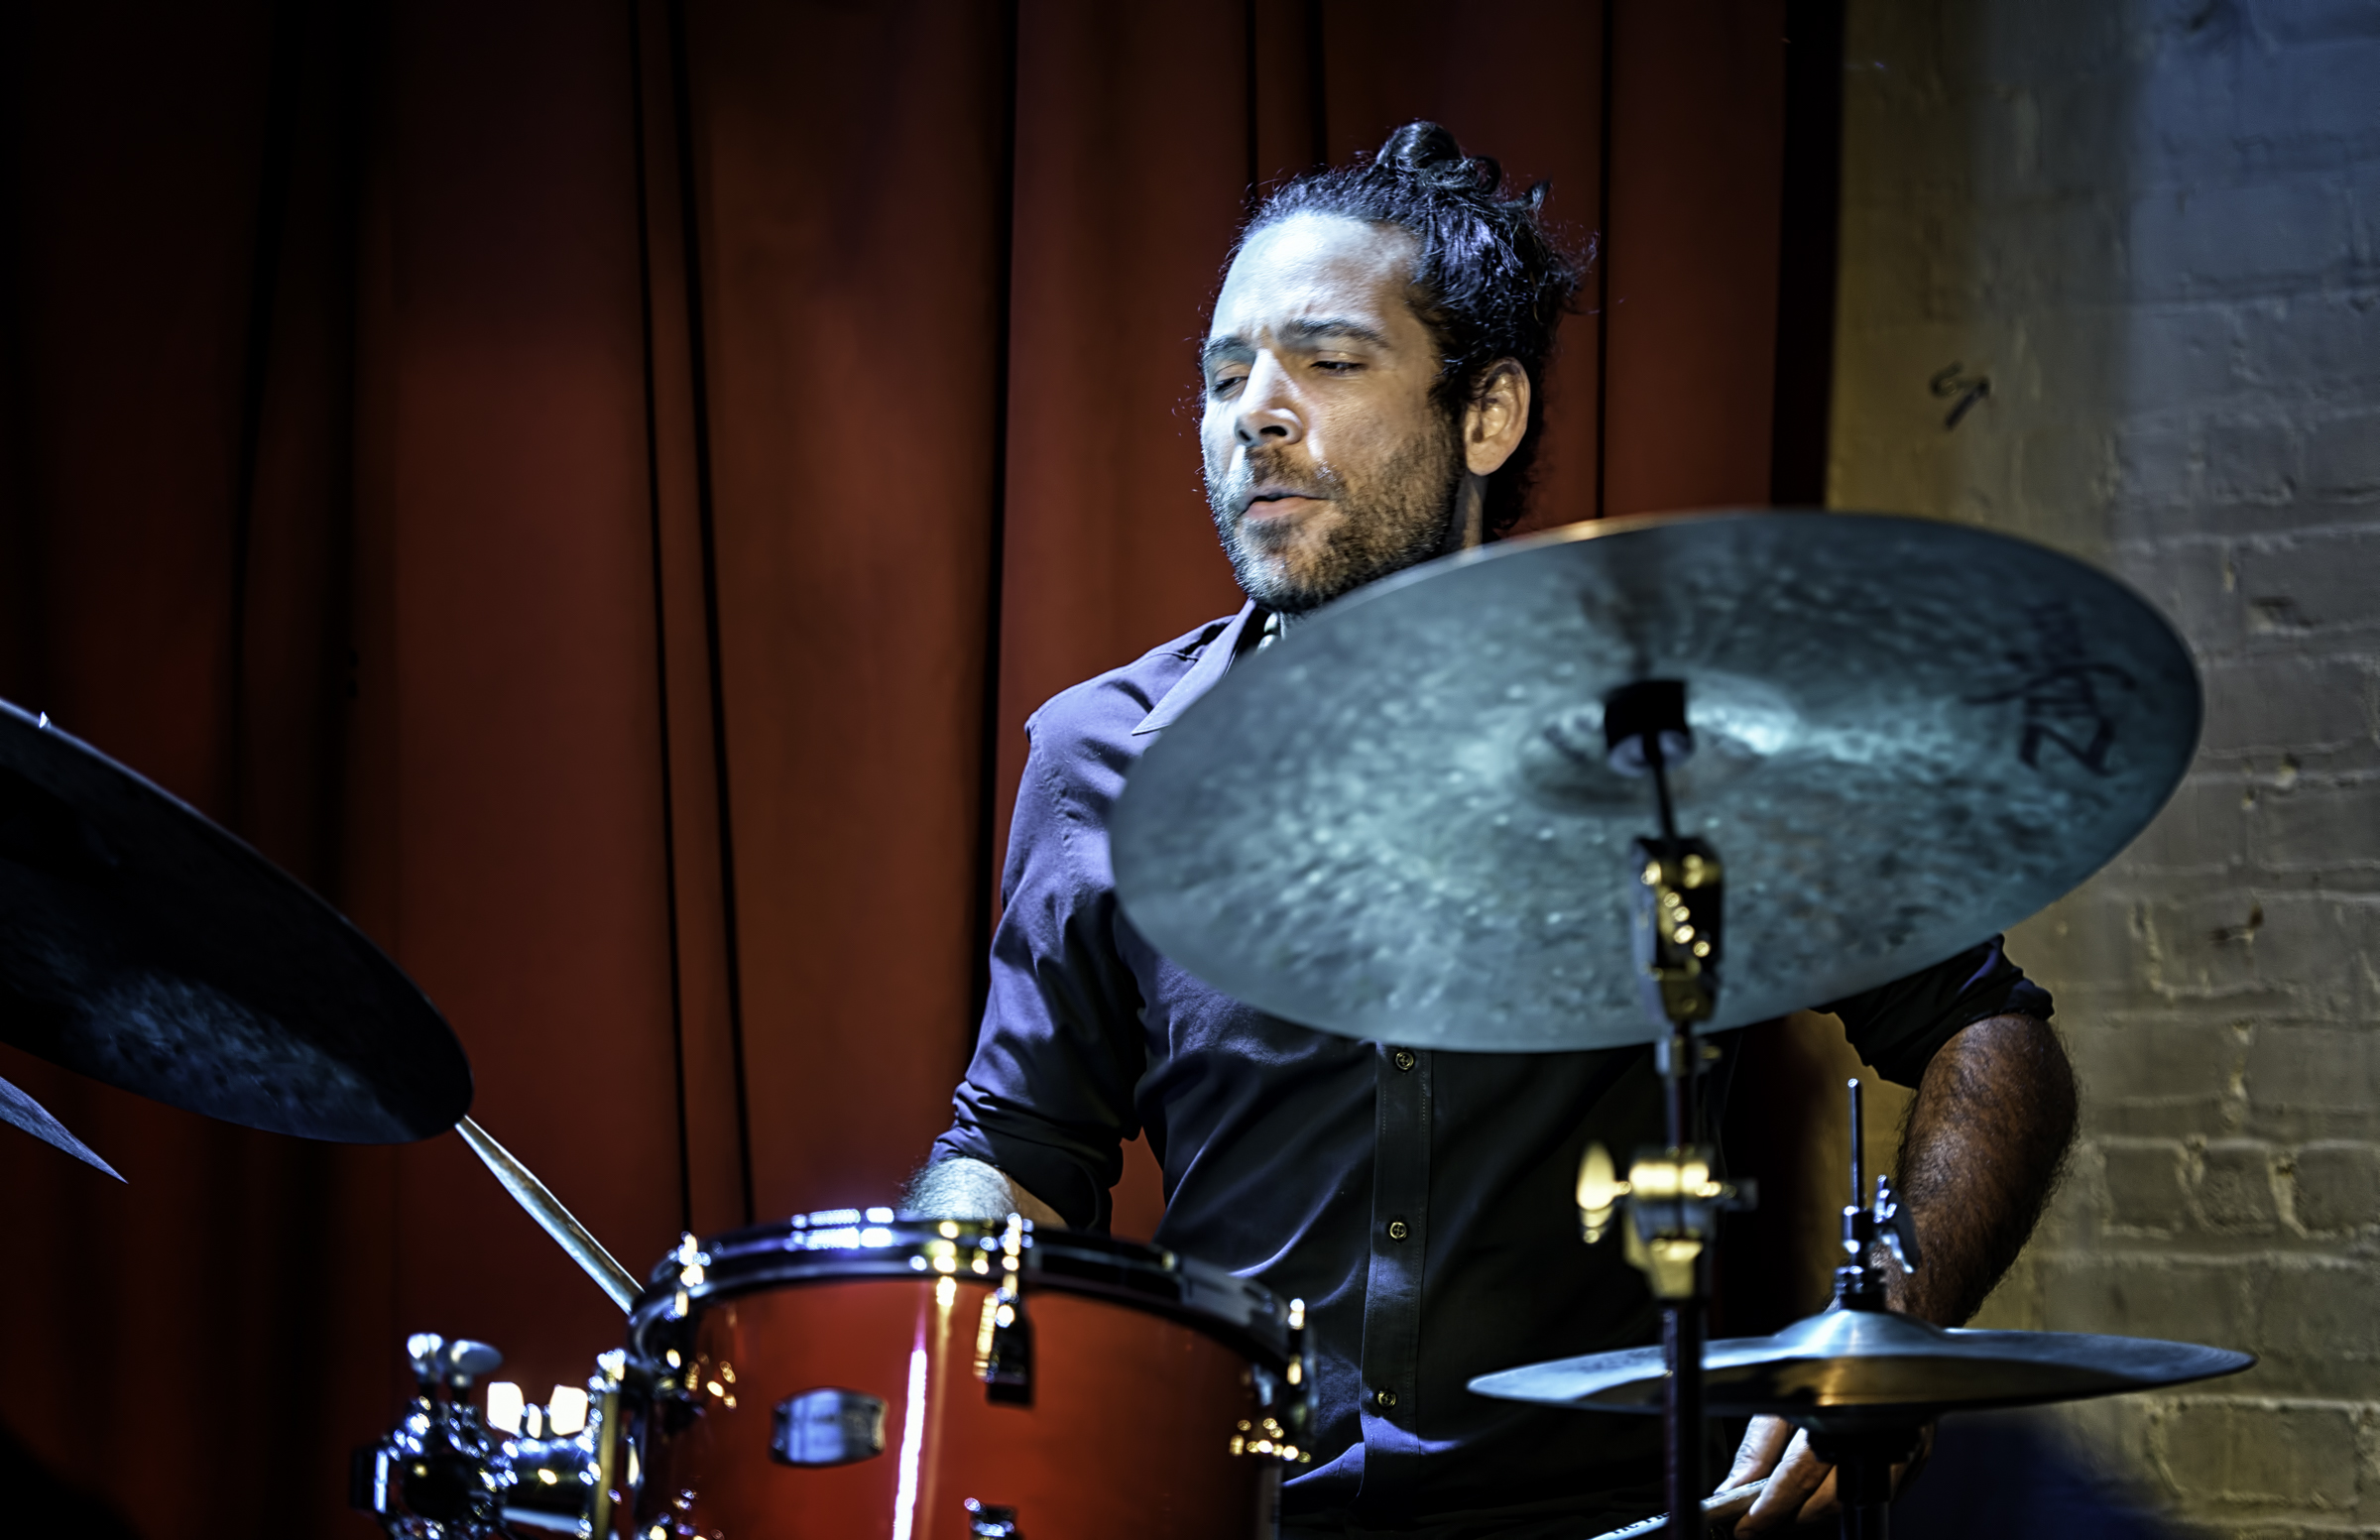 Henry Cole with Miguel Zenon Quartet at Club Bonafide in NYC